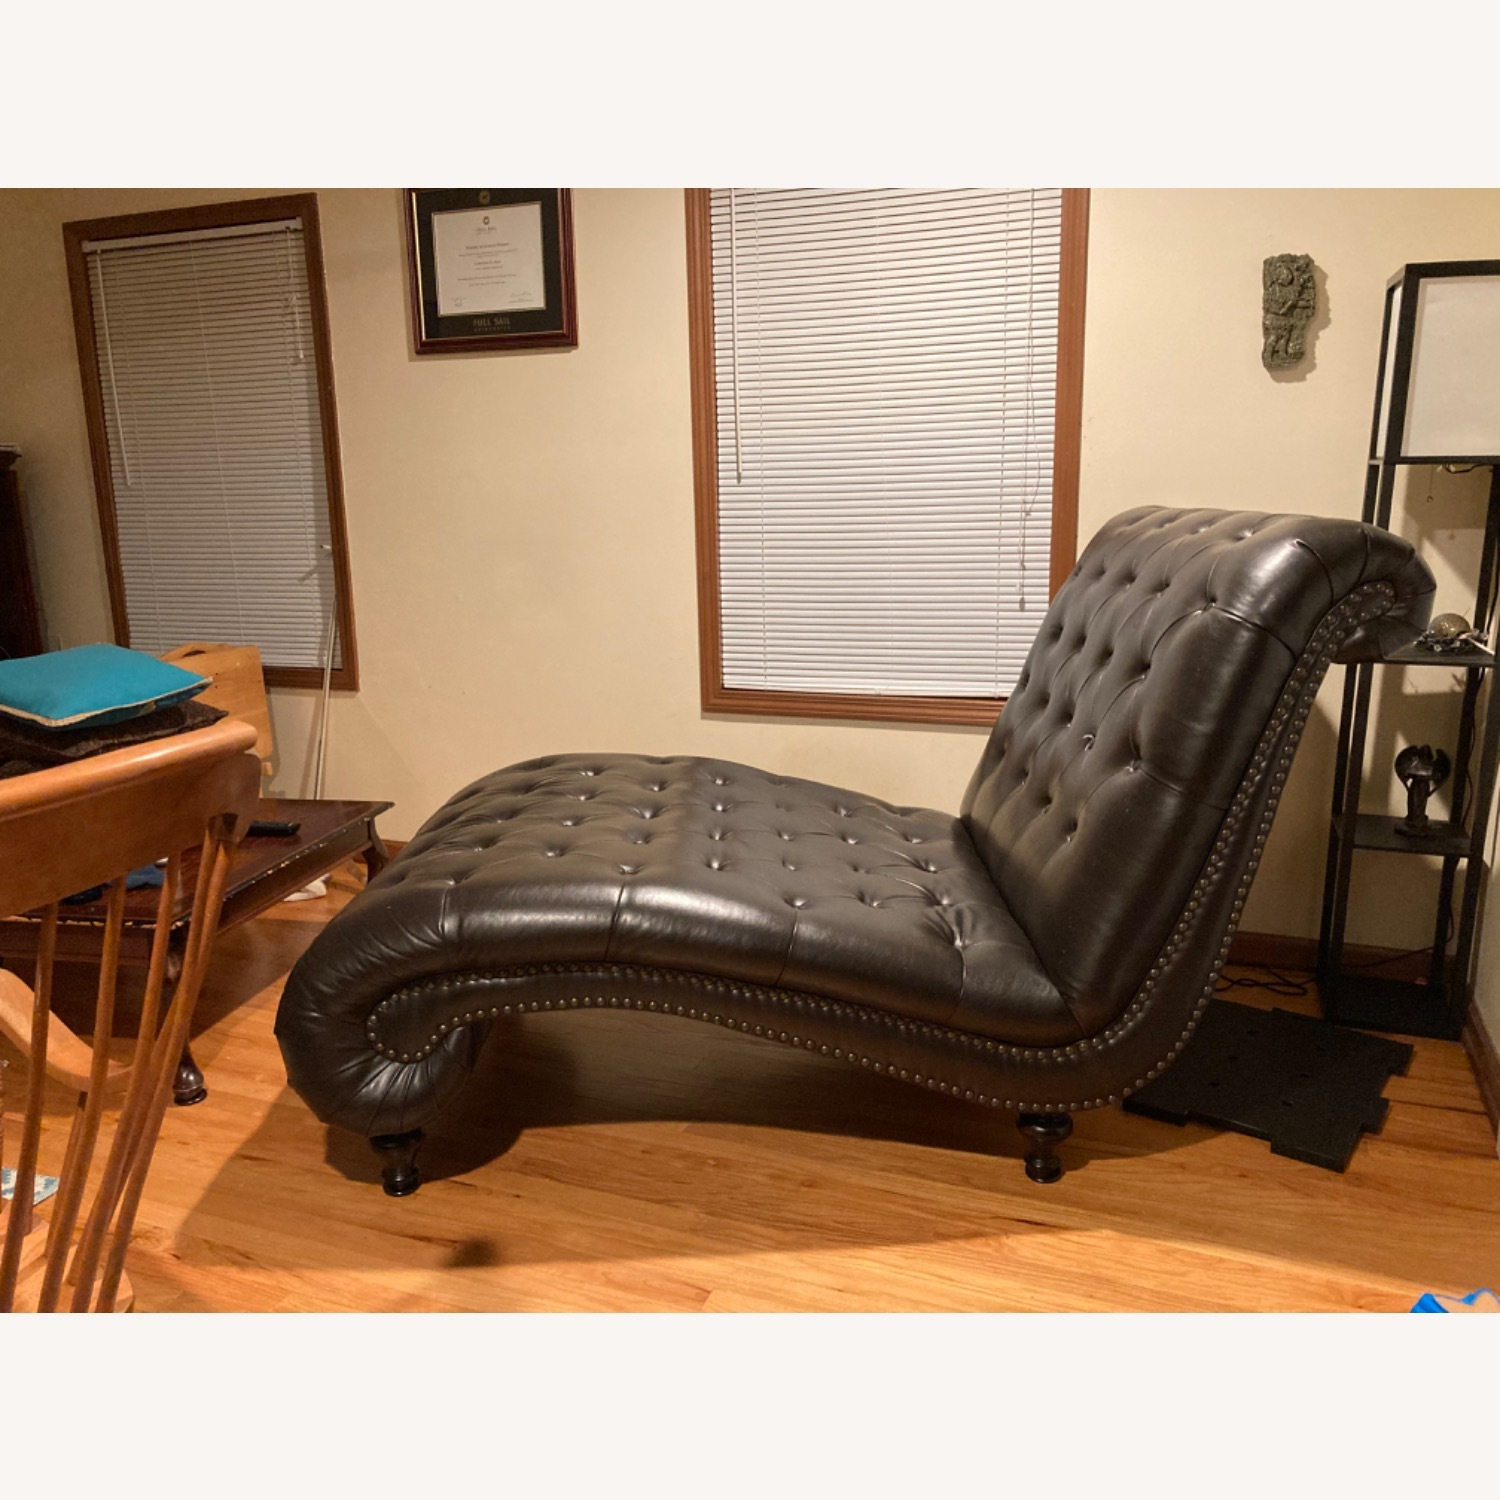 Raymour & Flannigan Leather Chaise - image-2